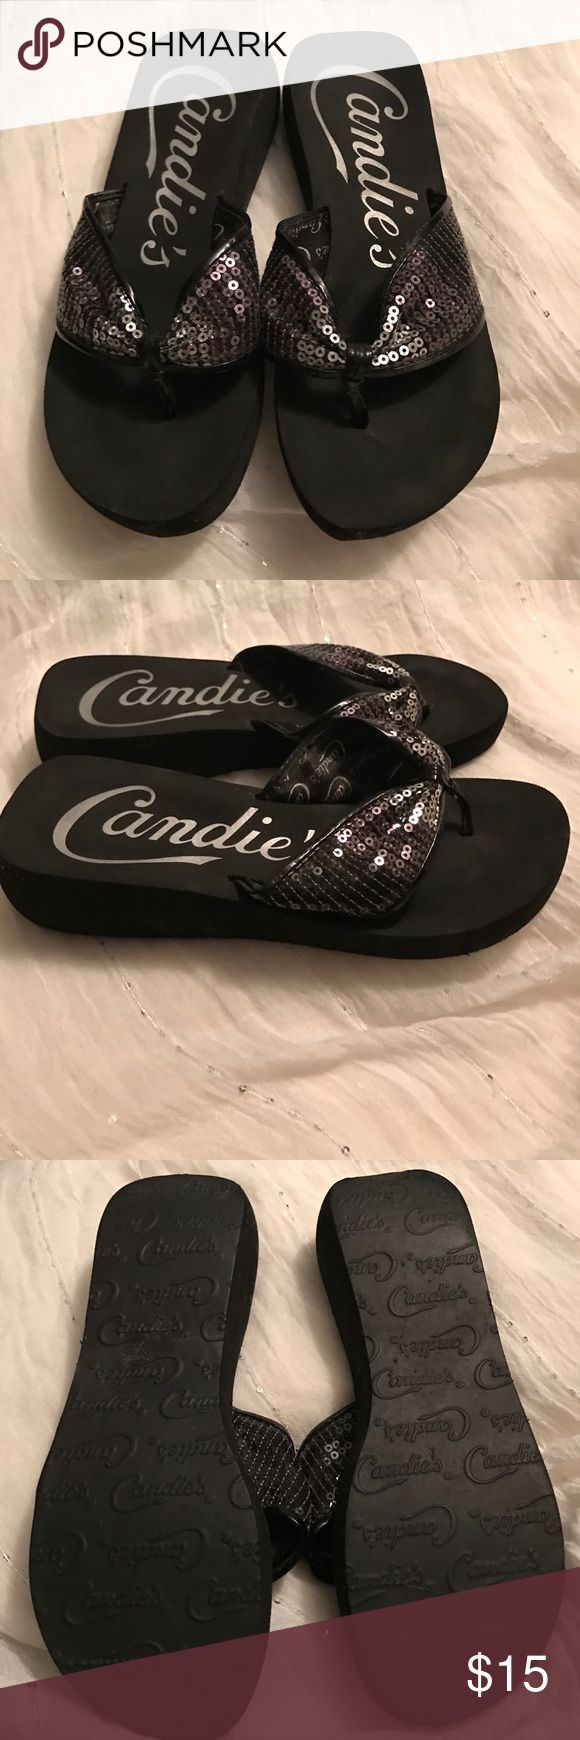 Brand NWOT Candies flip flops sequins 7.5 Brand NWOT Candies flip flops sequins 7.5.. Black with silver sequences .. gorgeous for spring-summer..show off that pedi!! One spot on bottom back of one pair- from traveling in a hurry and a flat iron (hair straightener) was not completely cool and fell out of its cooling sleeve.you can barely see on bottom of edge of shoe and when standing you can't see from back-mostly on bottom and one small line .more pics just ask - price reflects.. Smoke free…